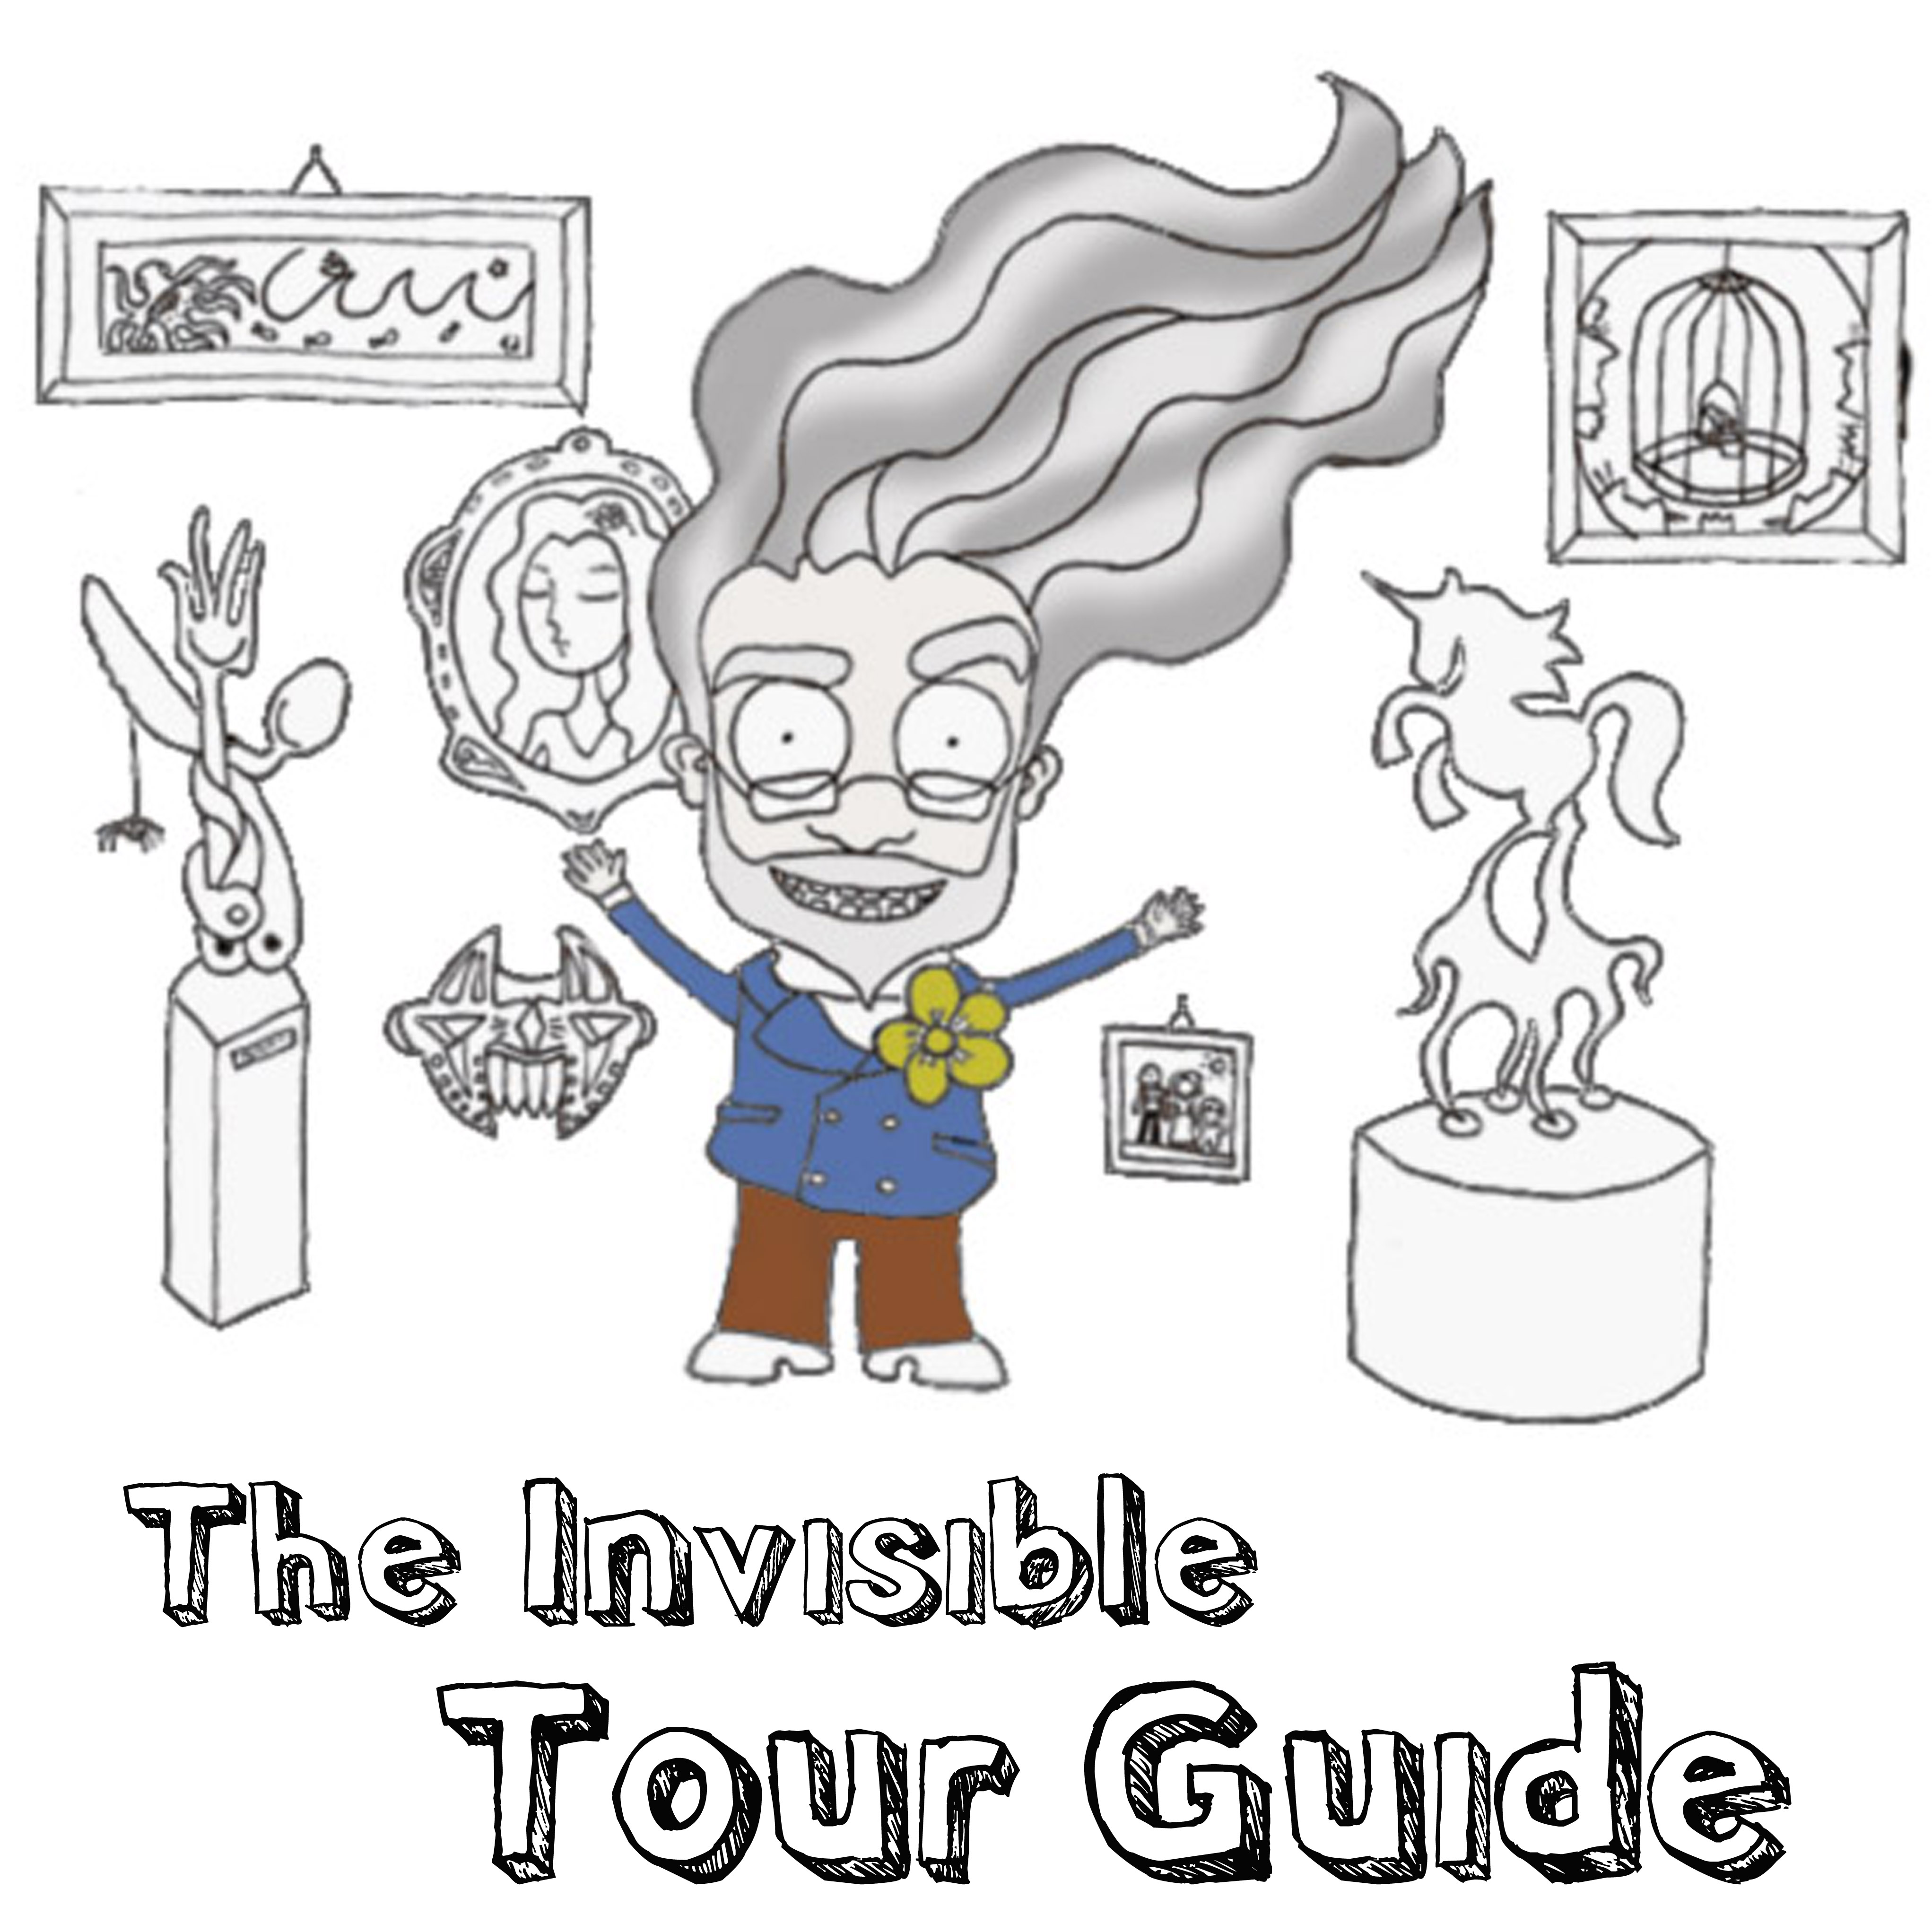 The Invisible Tour Guide